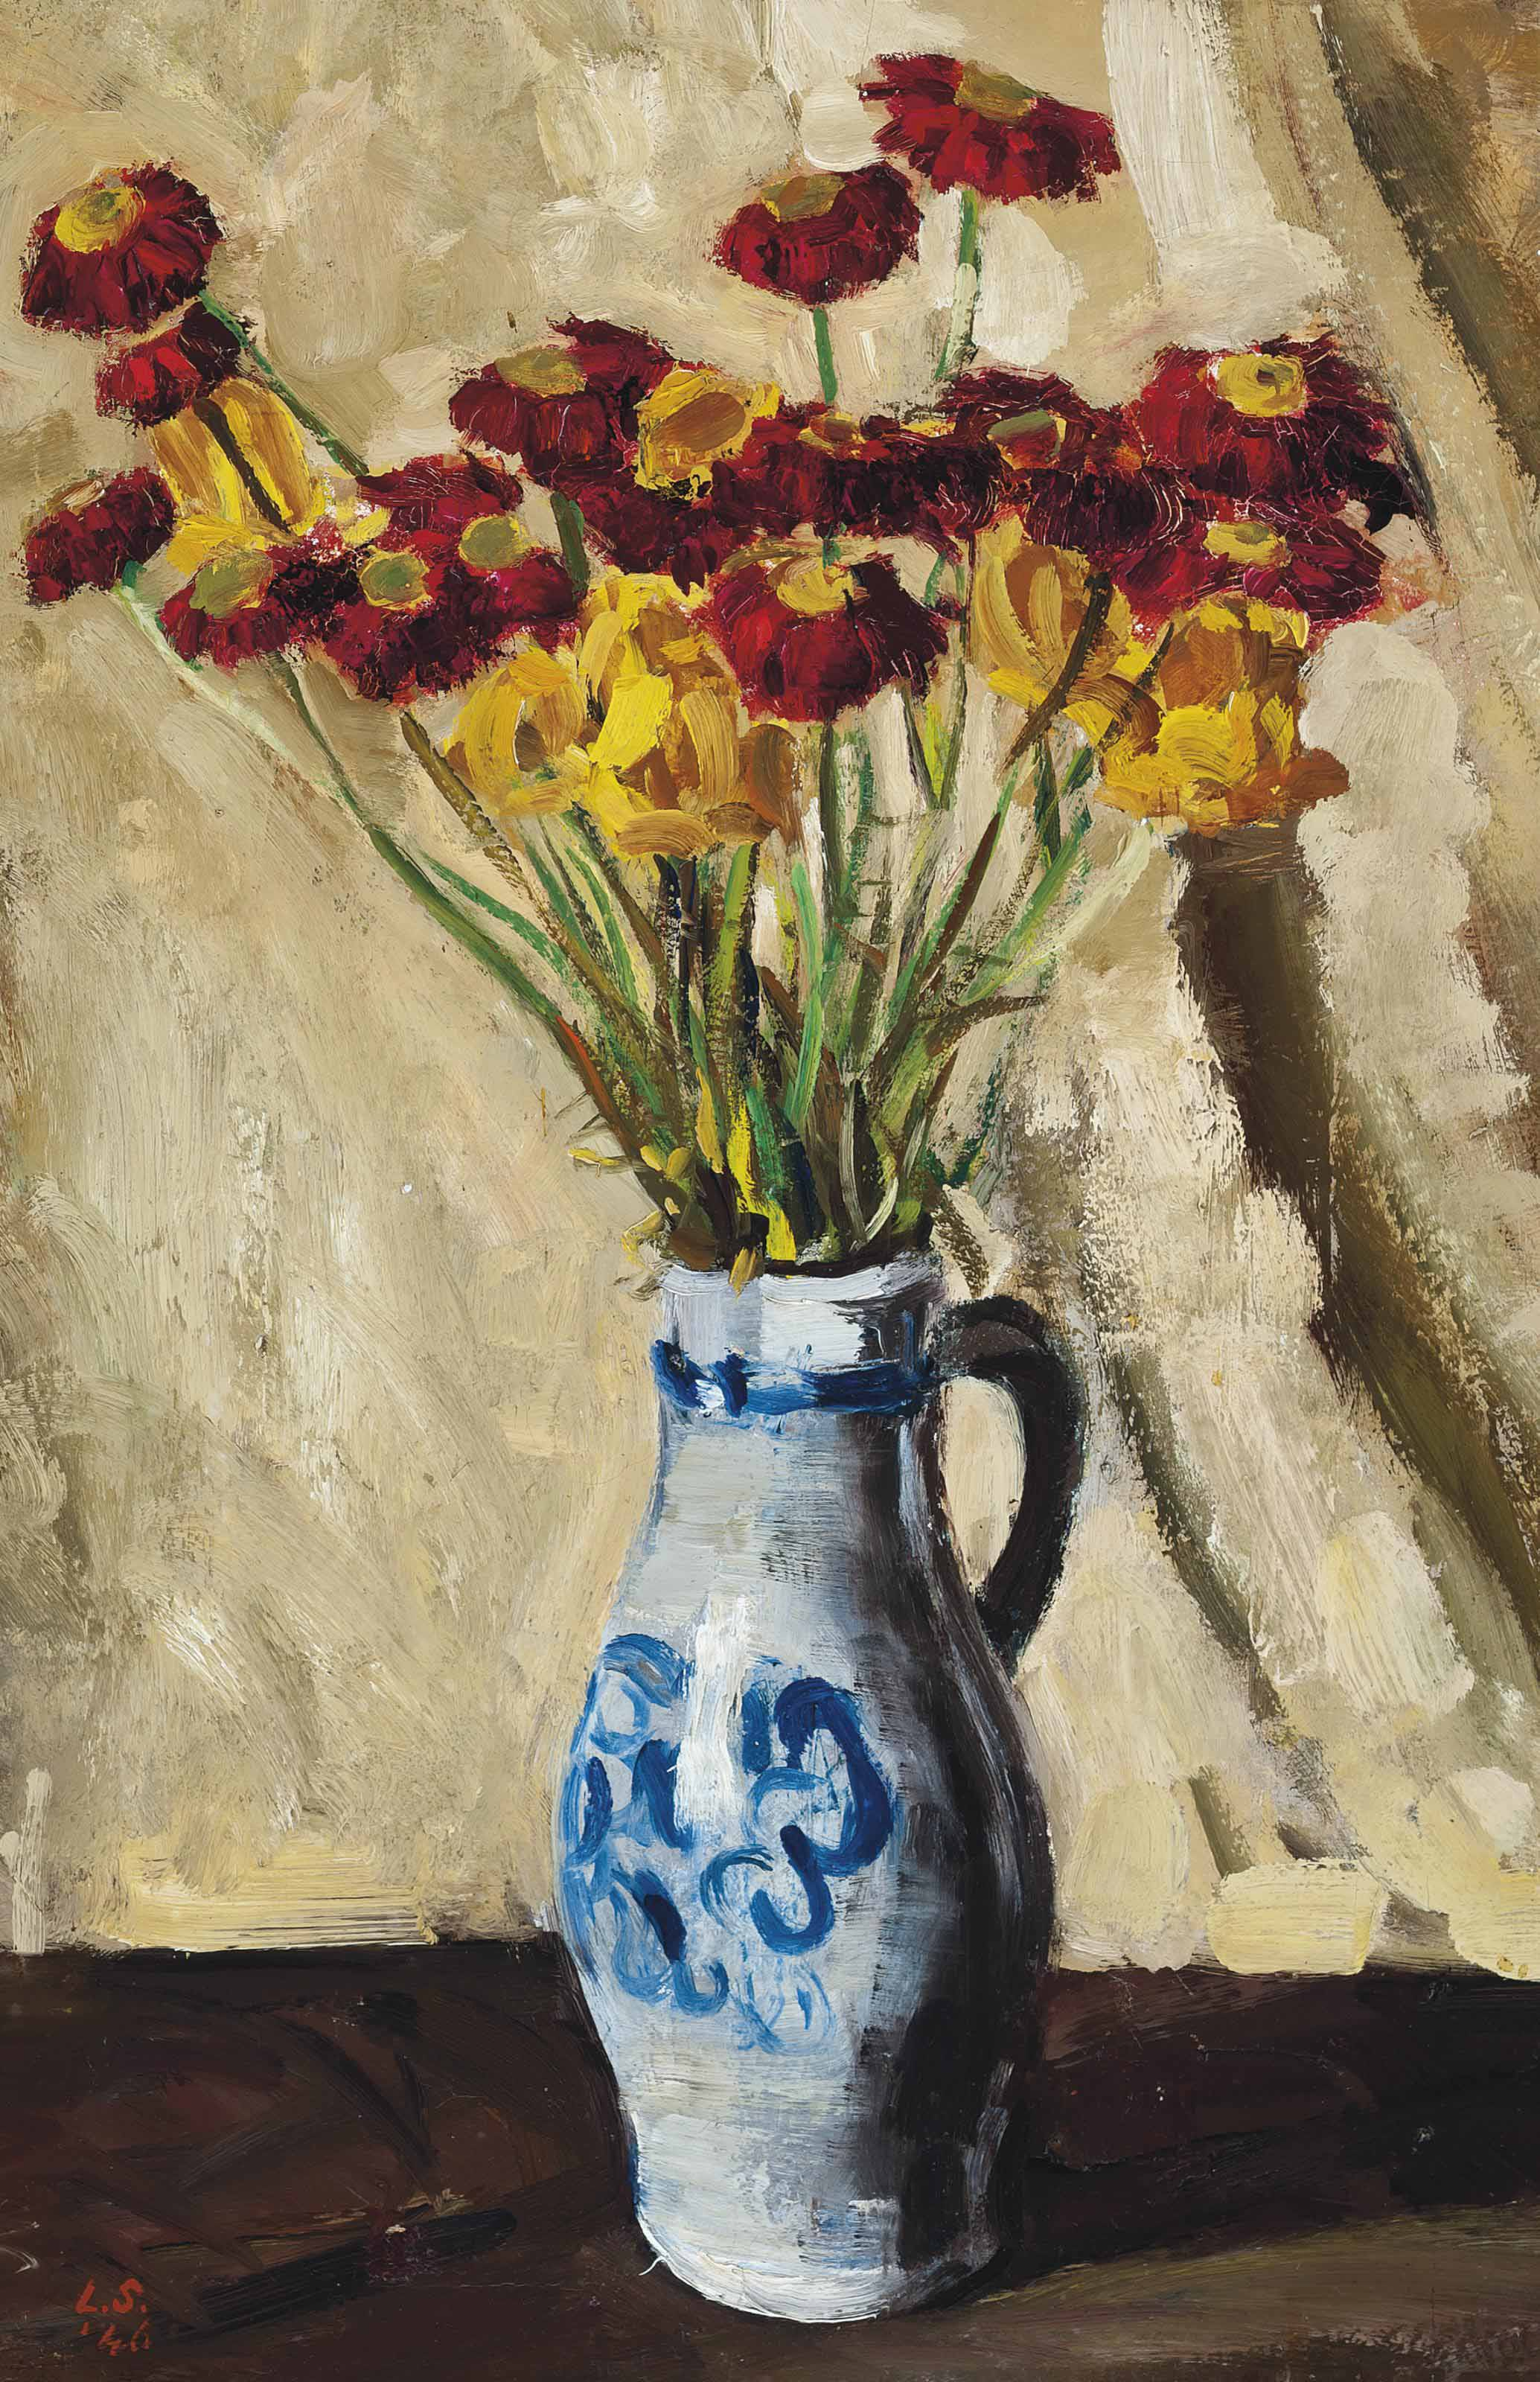 Vase of autumnal flowers